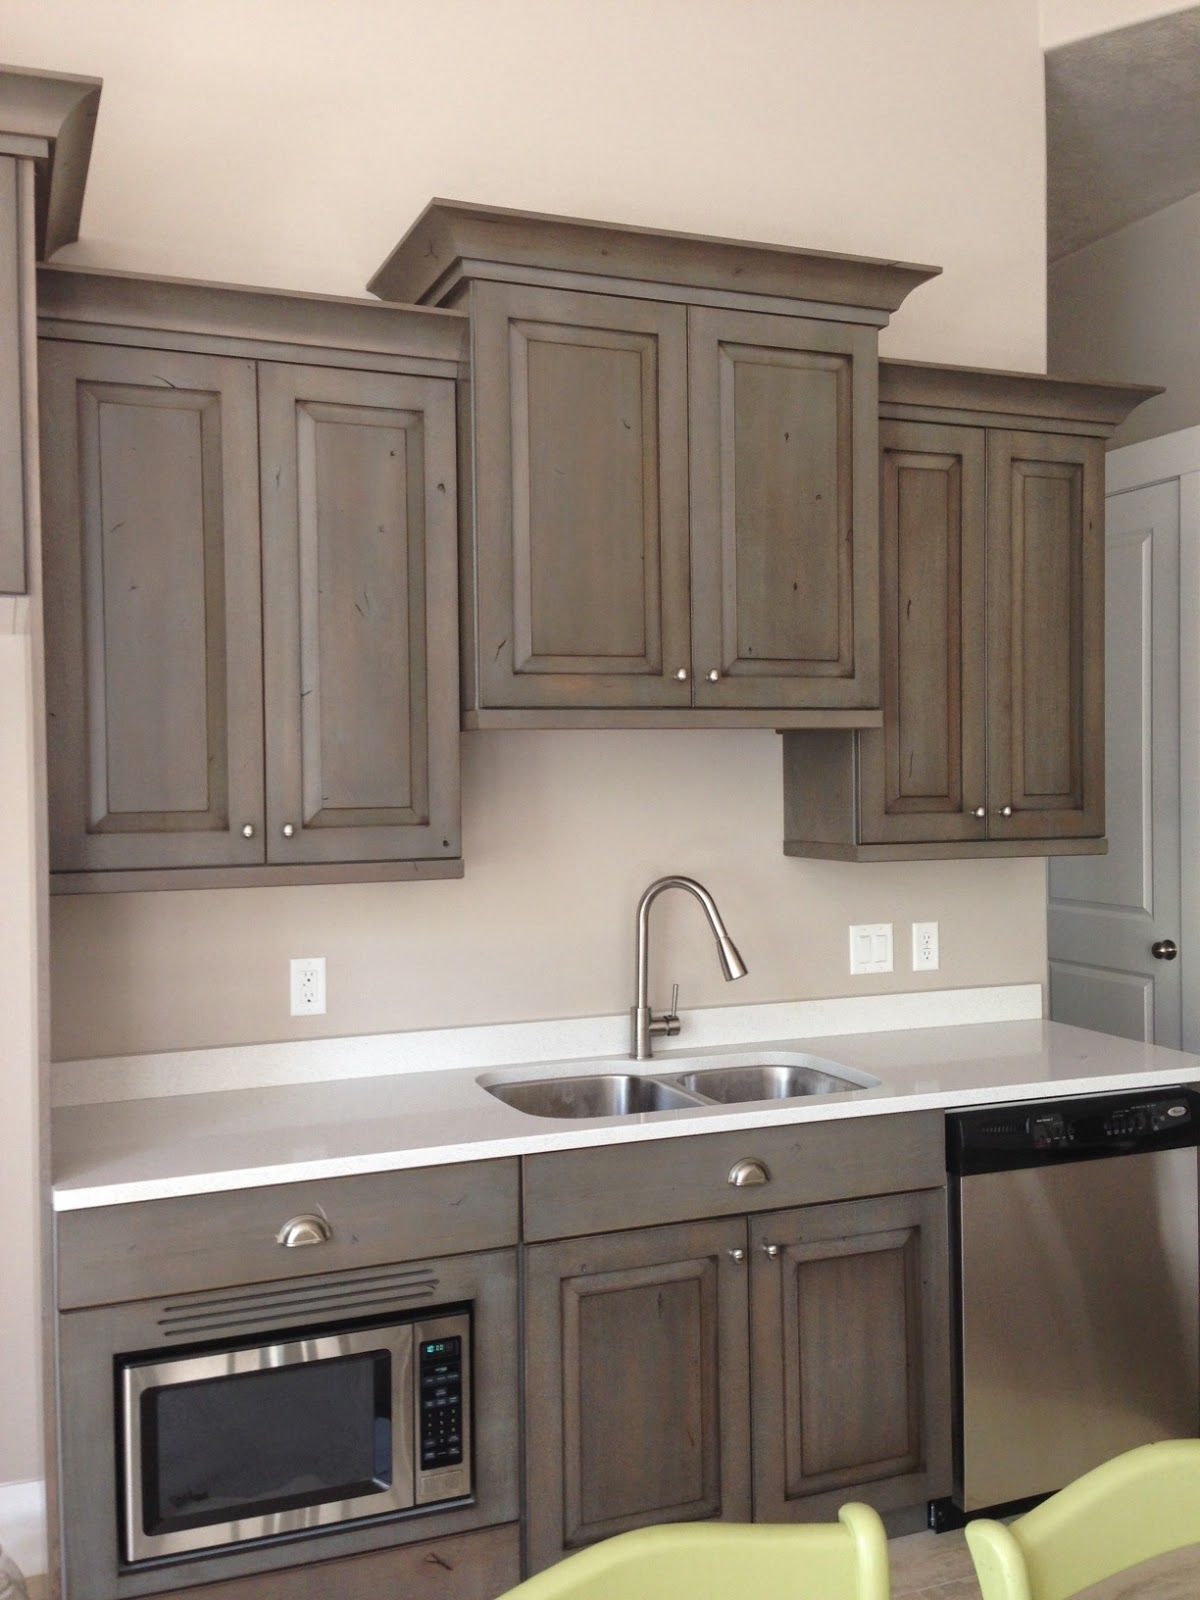 Smokey Grey Cabinets Reference Too Dark For Top Too Light For Bottom Marble Backsplash Kitchen Basement Kitchen Kitchen Design